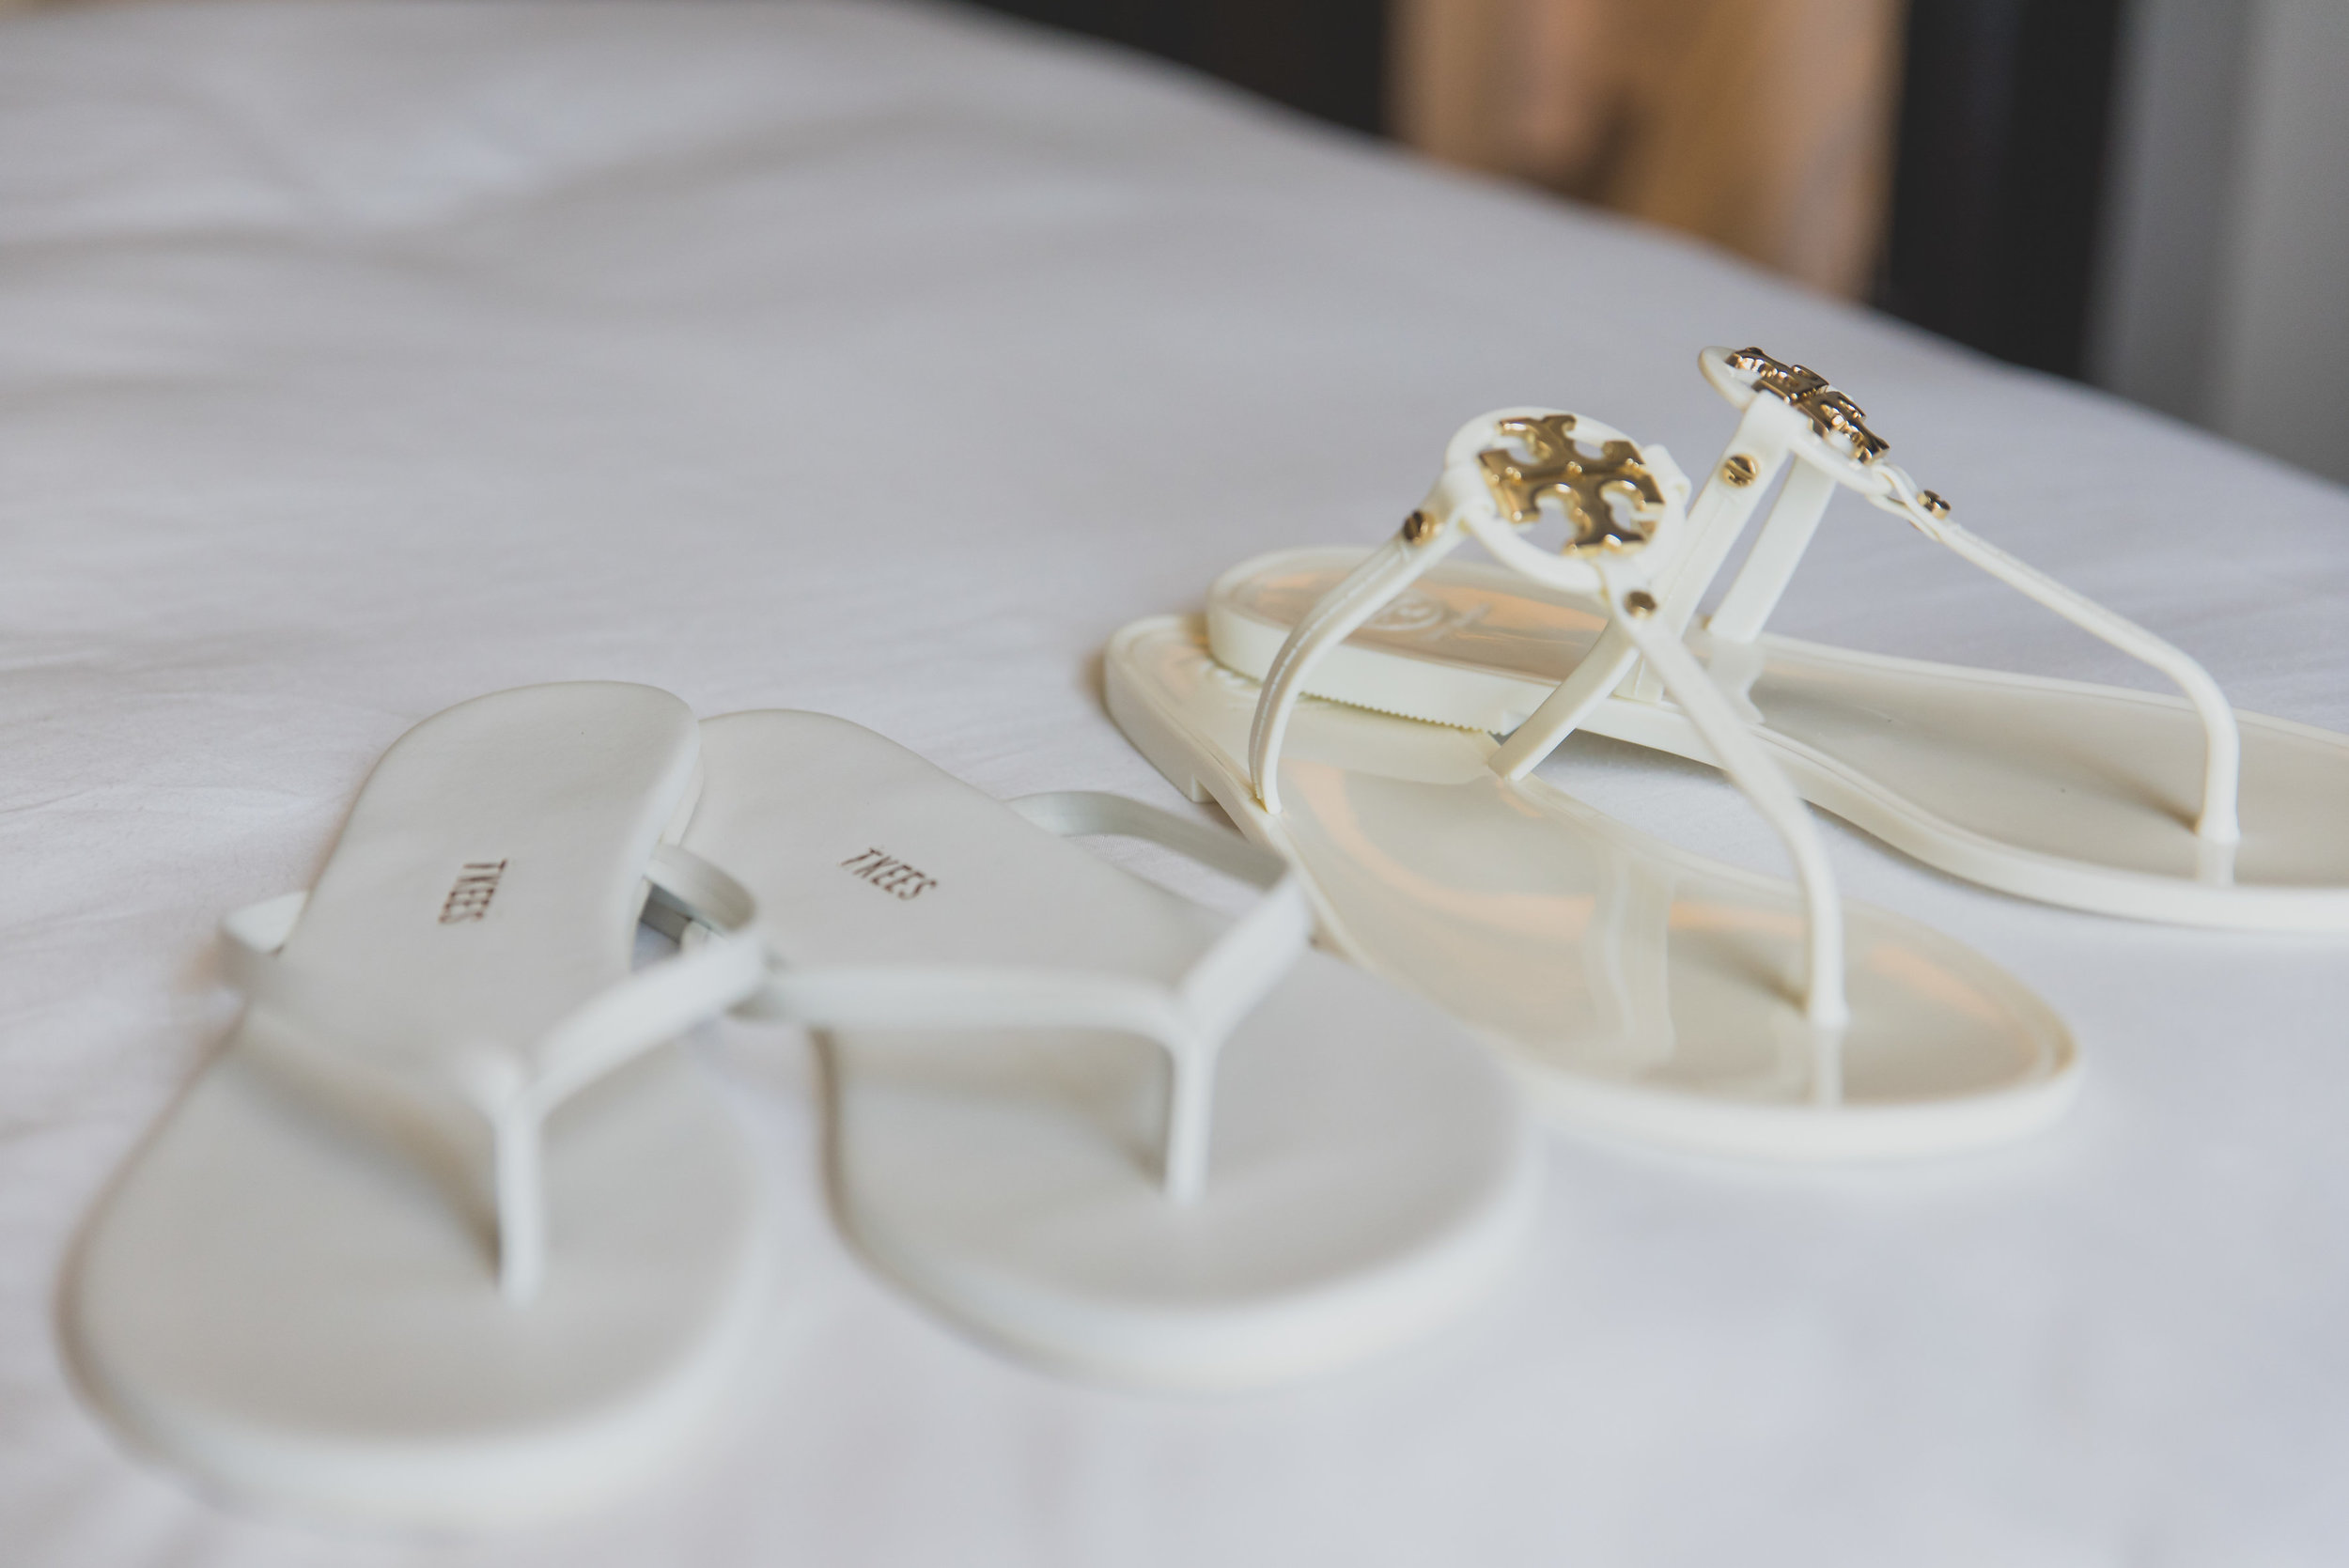 Two pairs of white beach sandals on a white bed.